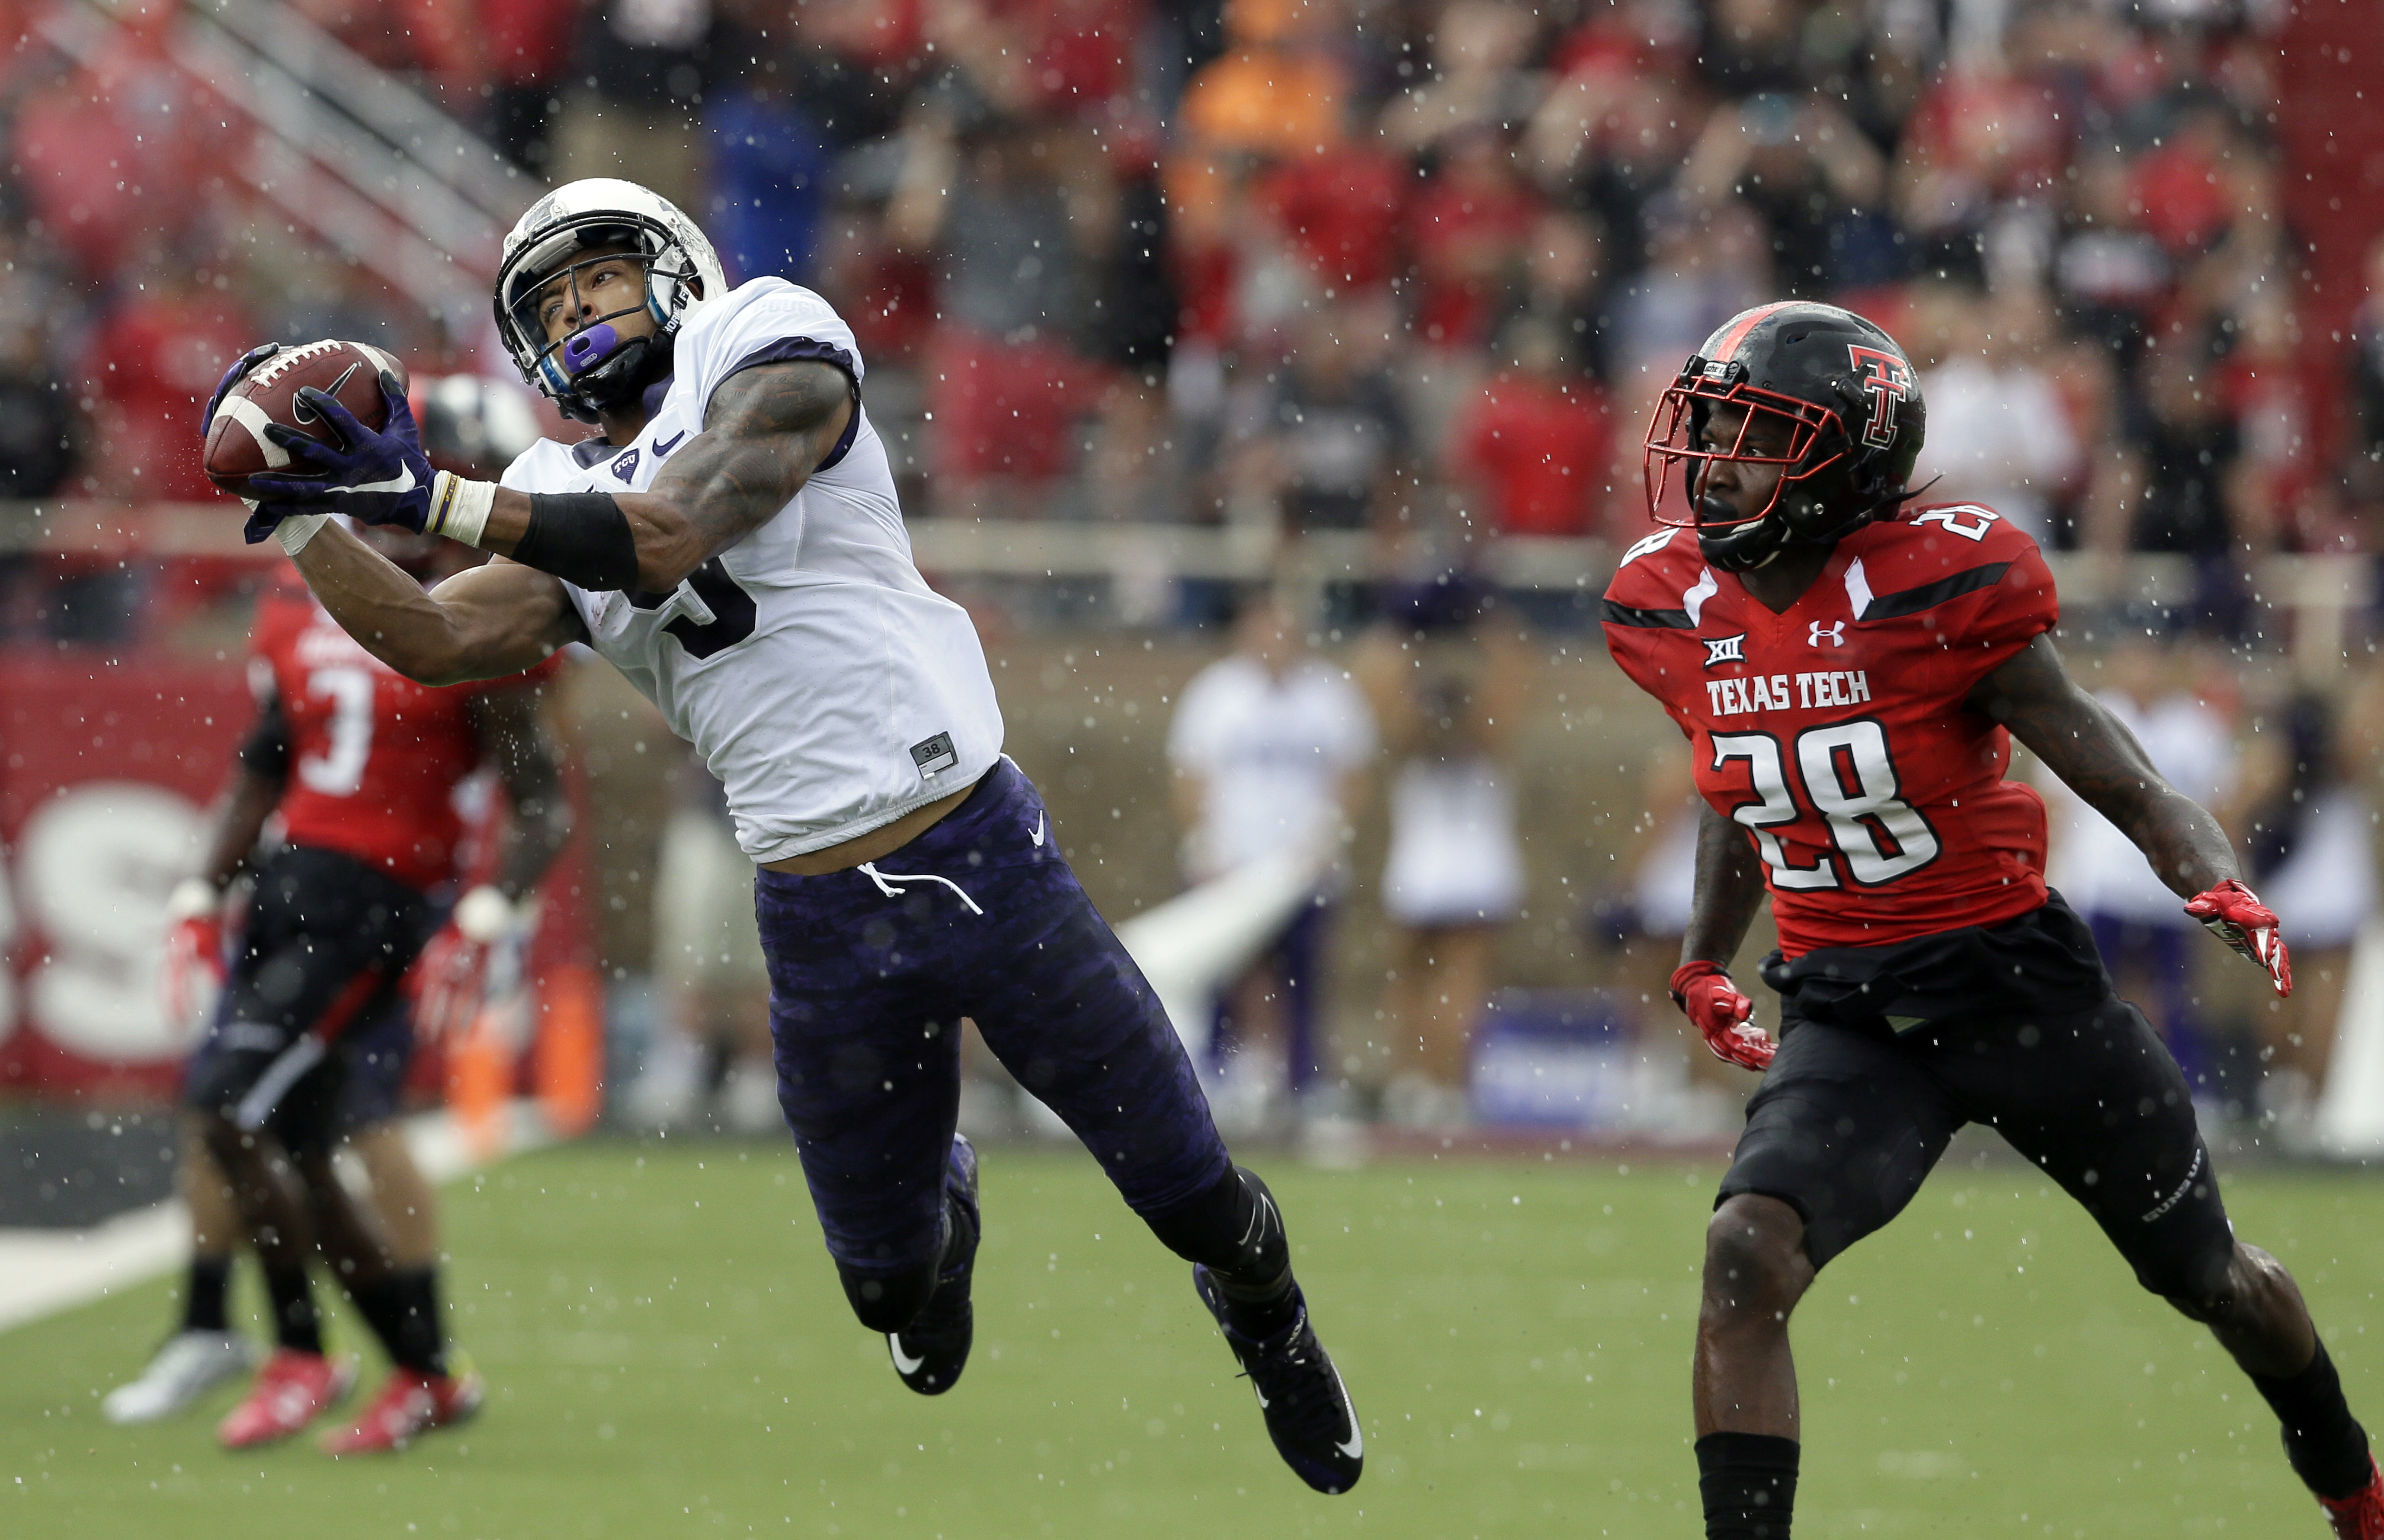 TCU wide receiver Josh Doctson (9) catches a pass in front of Texas Tech defensive back Paul Banks (28) during the first half of an NCAA college football game, Saturday, Sept. 26, 2015, in Lubbock, Texas. (AP Photo/LM Otero)